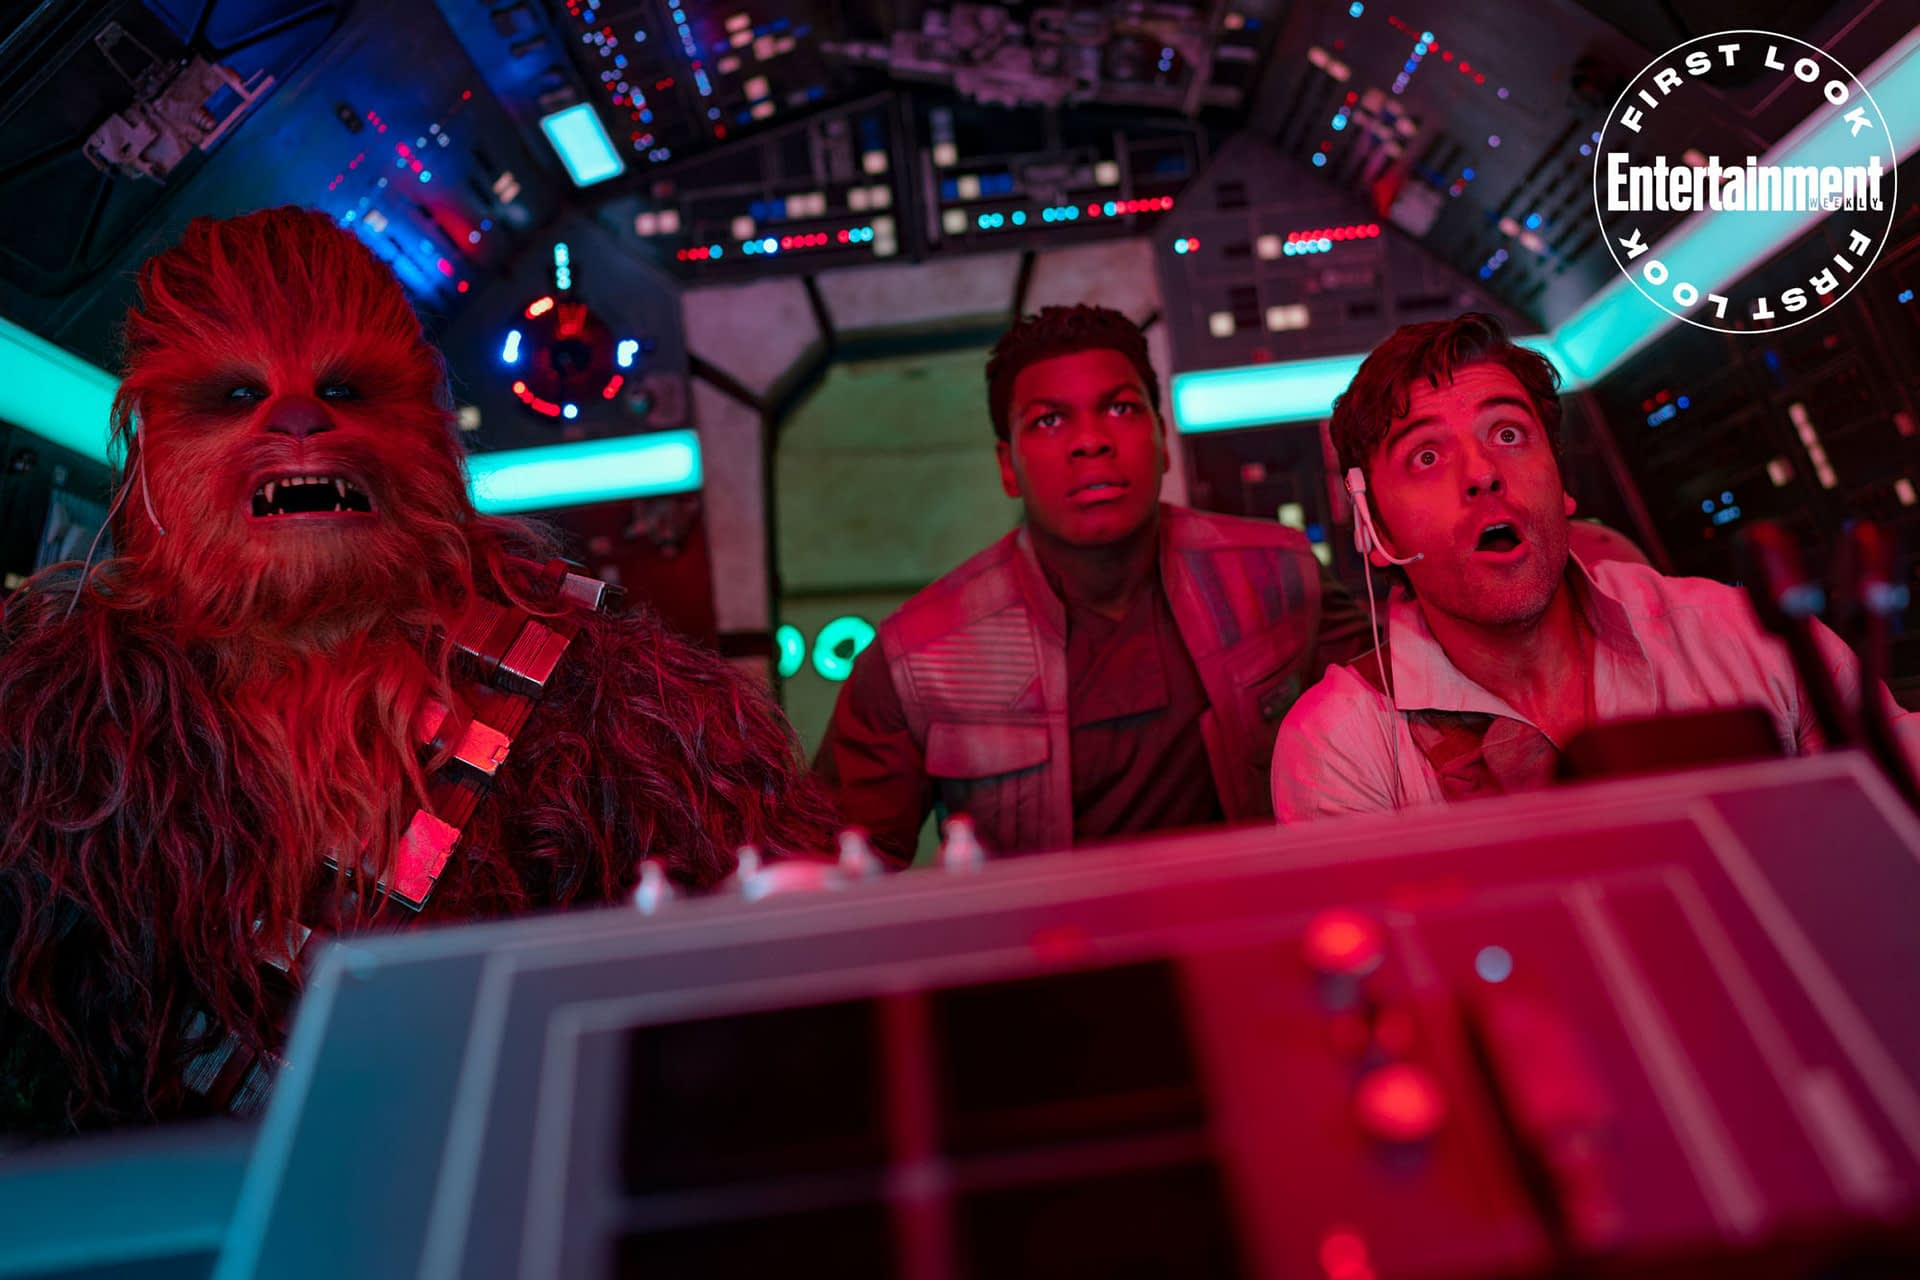 """""""Star Wars"""": New Image of Finn, Poe, and Chewie from """"The Rise of Skywalker"""""""